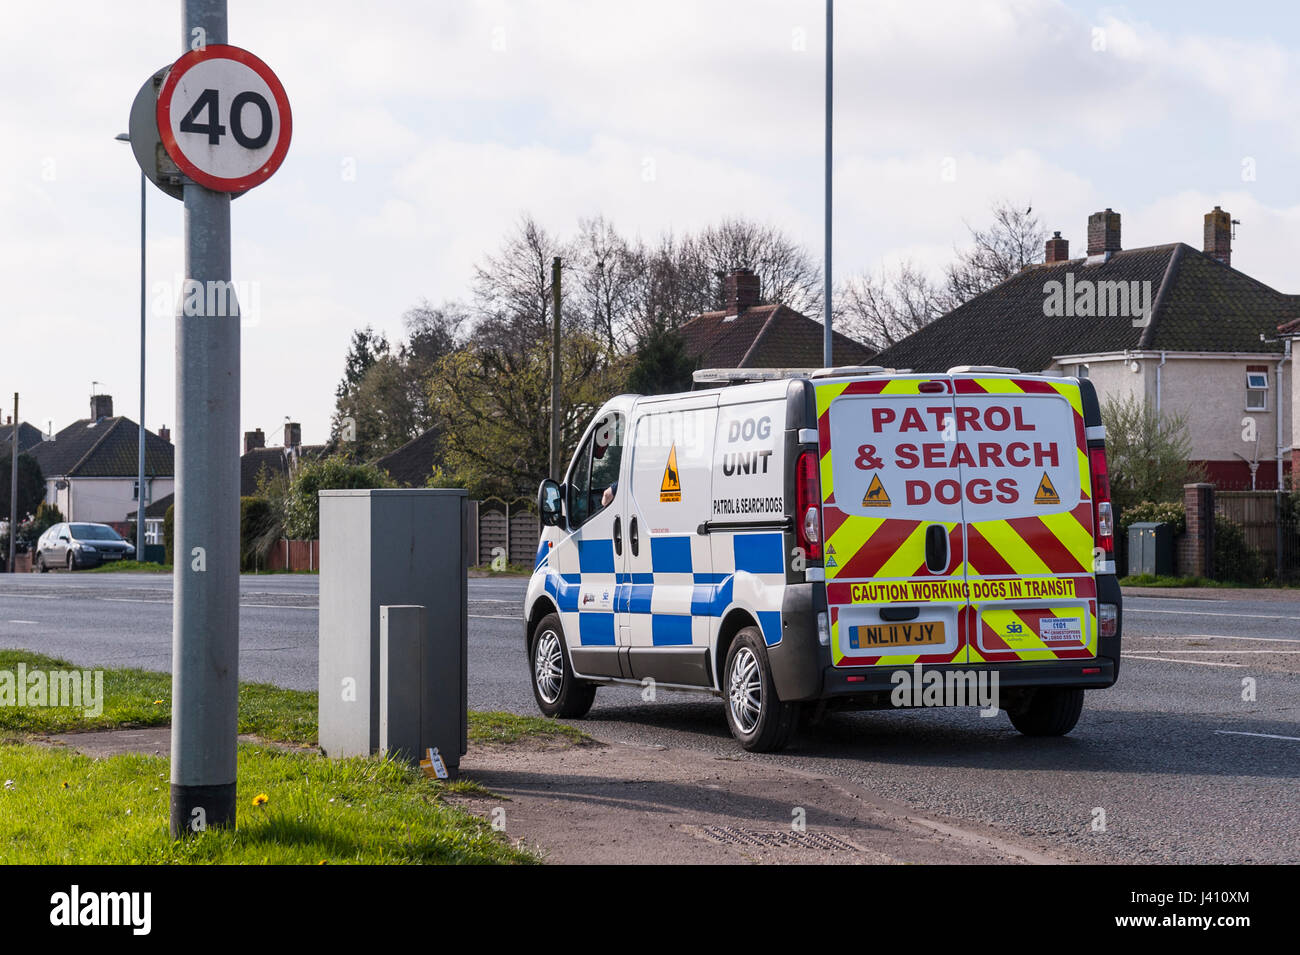 A Patrol & Search Dogs van in the Uk - Stock Image